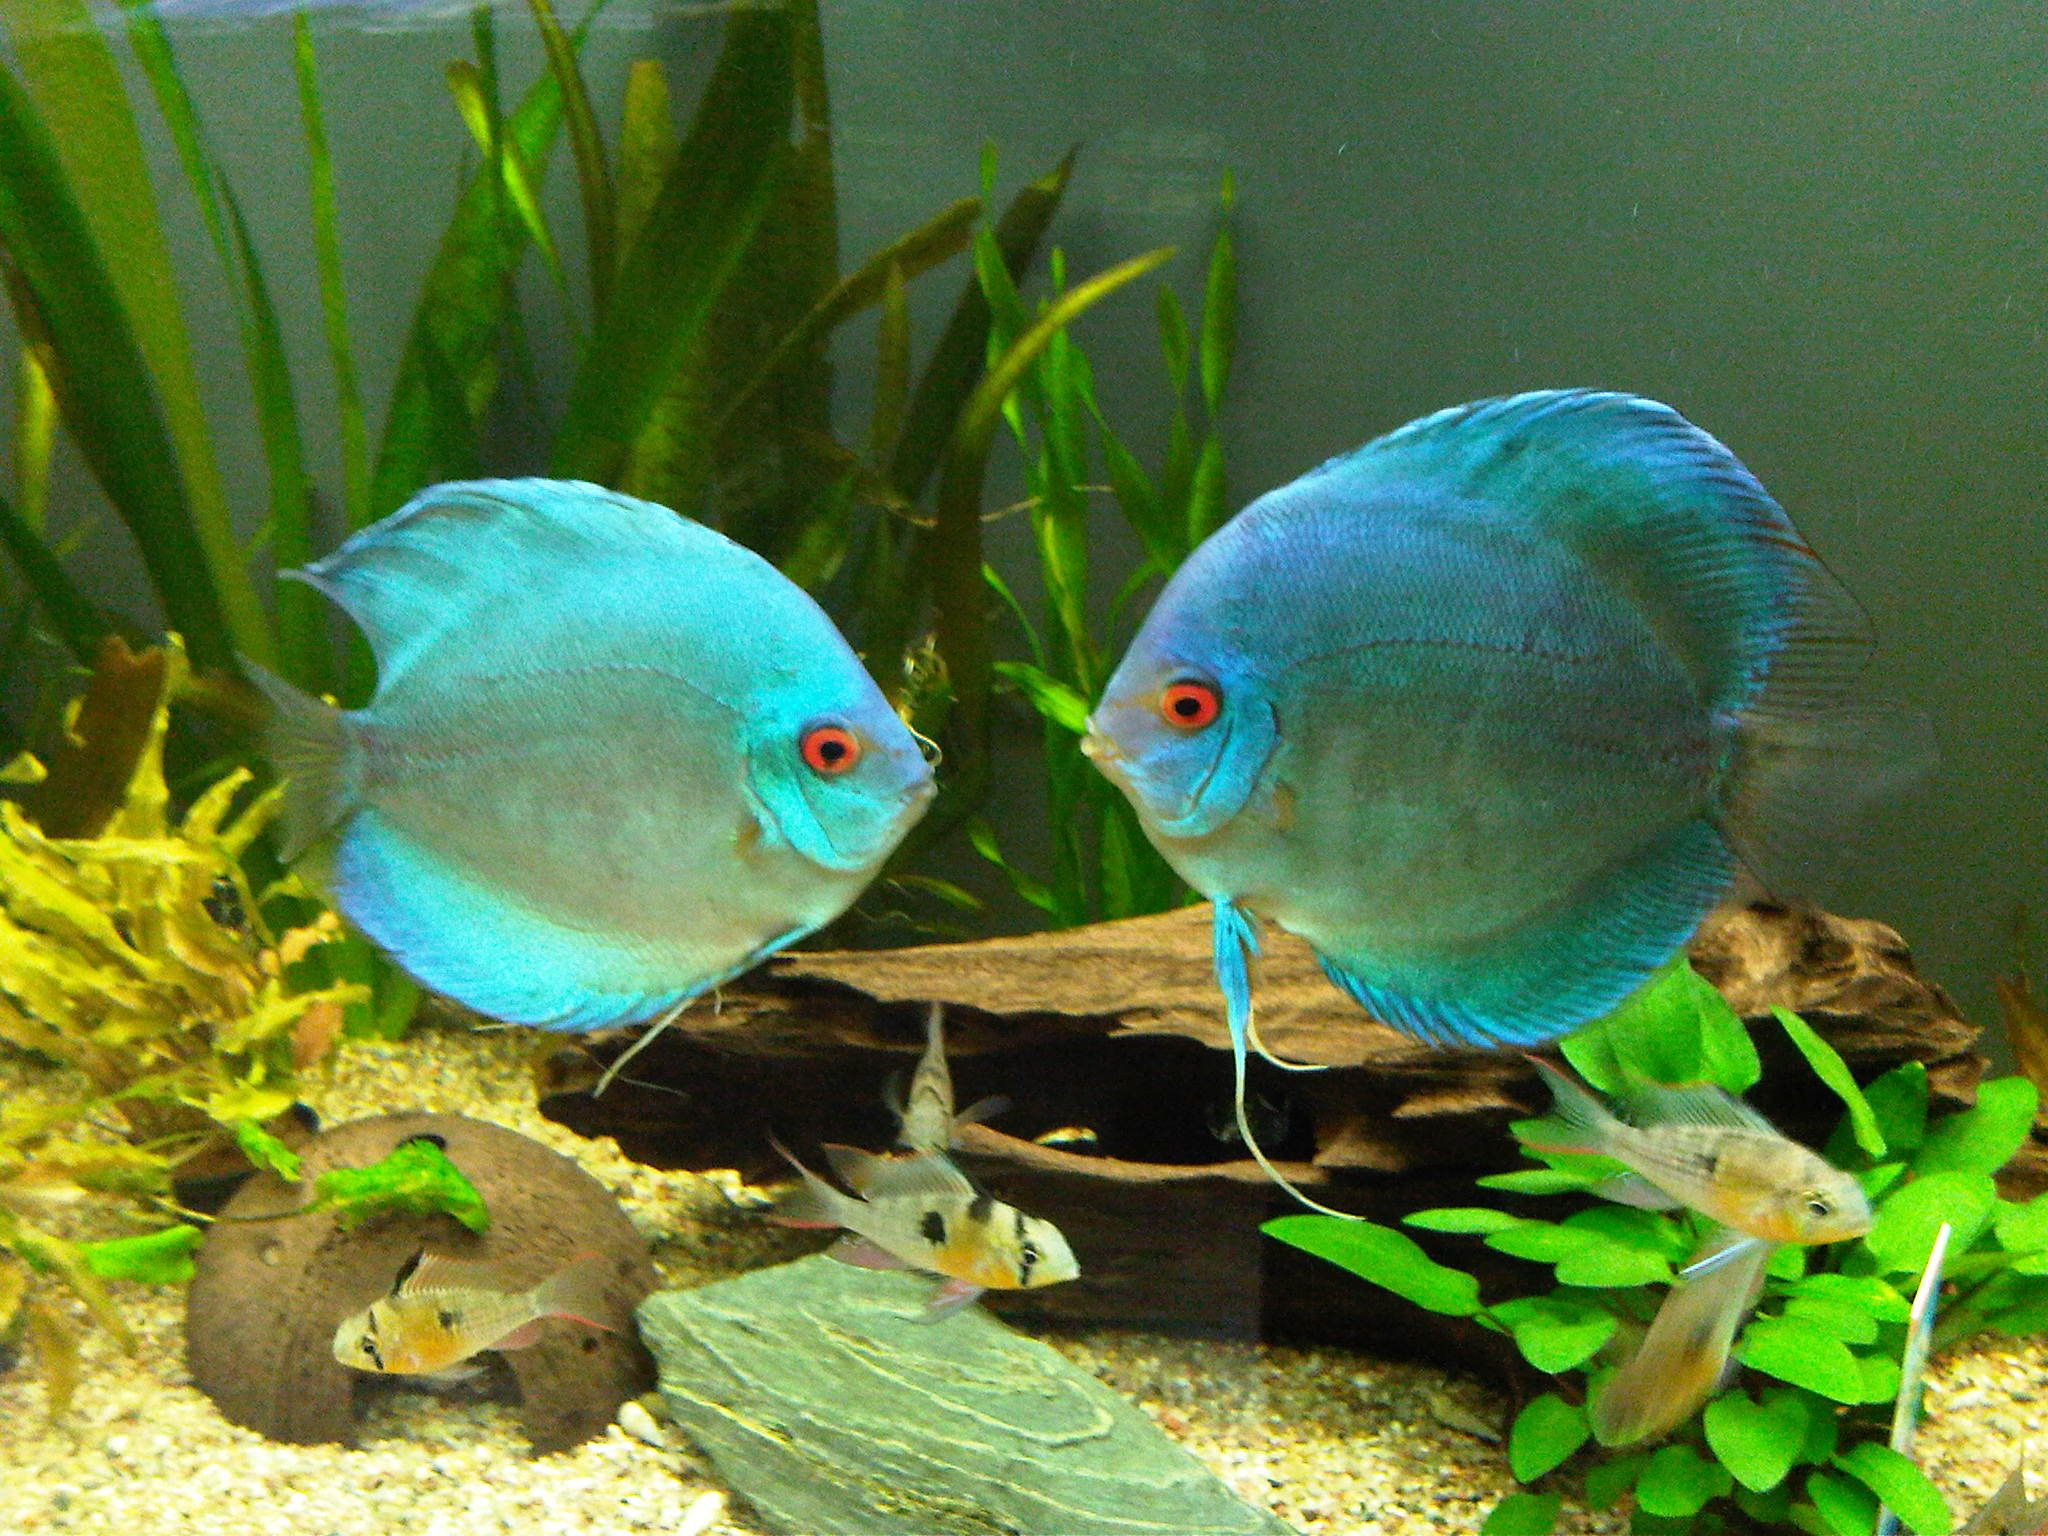 Freshwater aquarium fish guide - Blue Discus Freshwater Aquarium Fish Guide Here